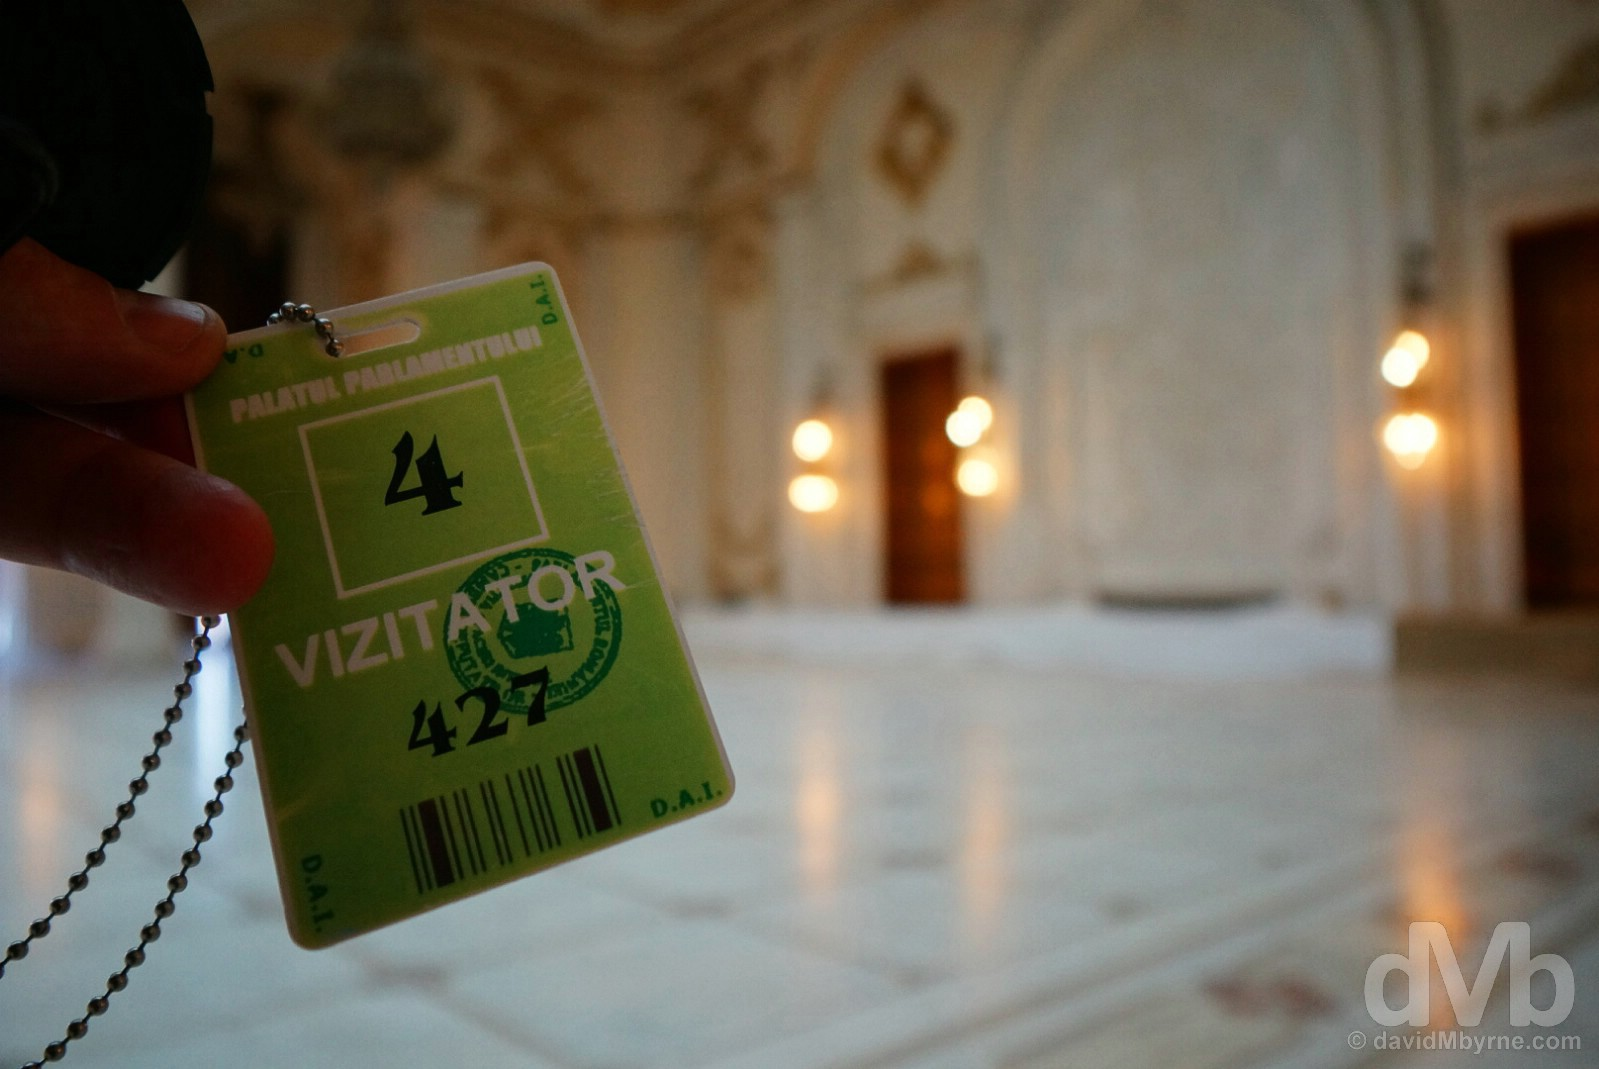 My credentials. Touring the Palace of Parliament in Bucharest, Romania. April 1, 2015.